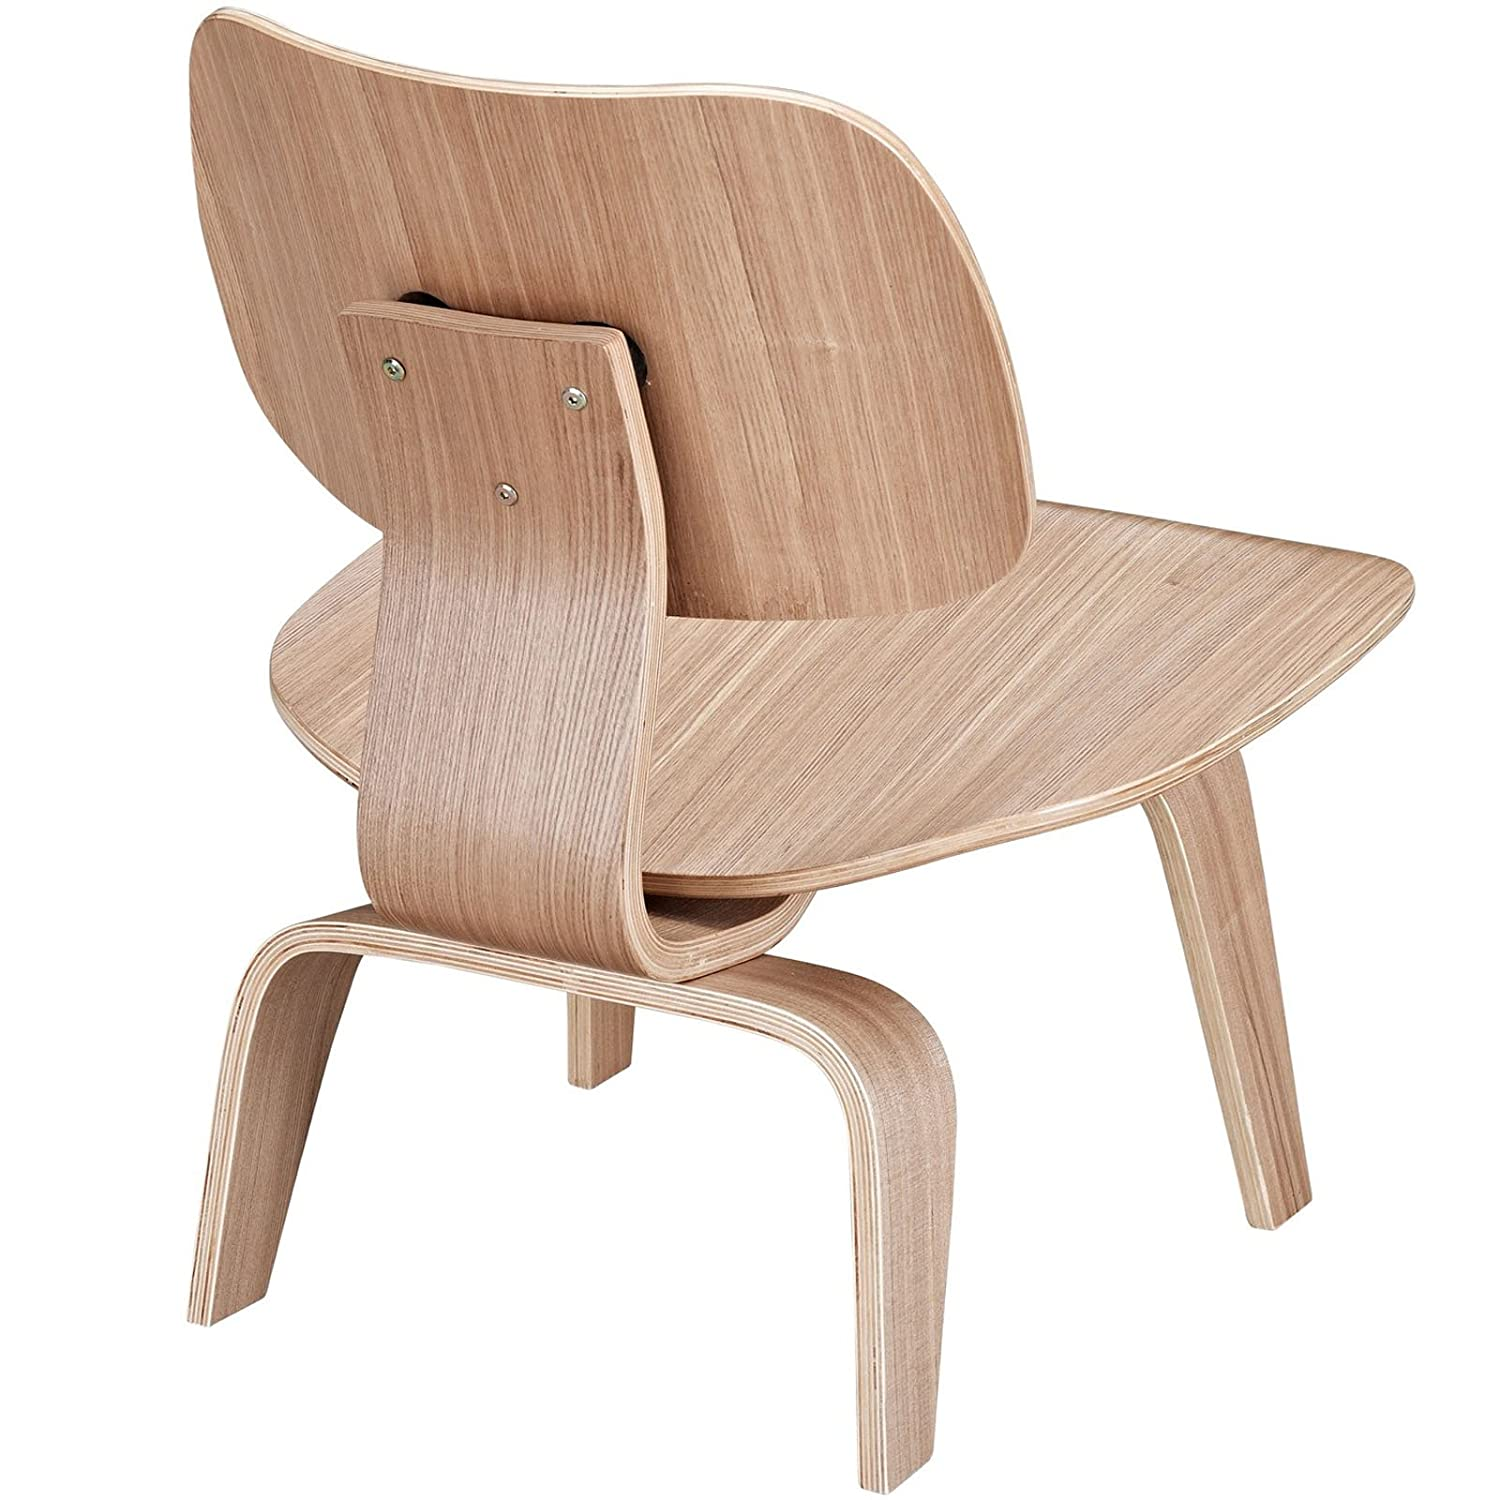 Bent plywood chair eames - Amazon Com Modway Fathom Plywood Lounge Chair In Natural Kitchen Dining